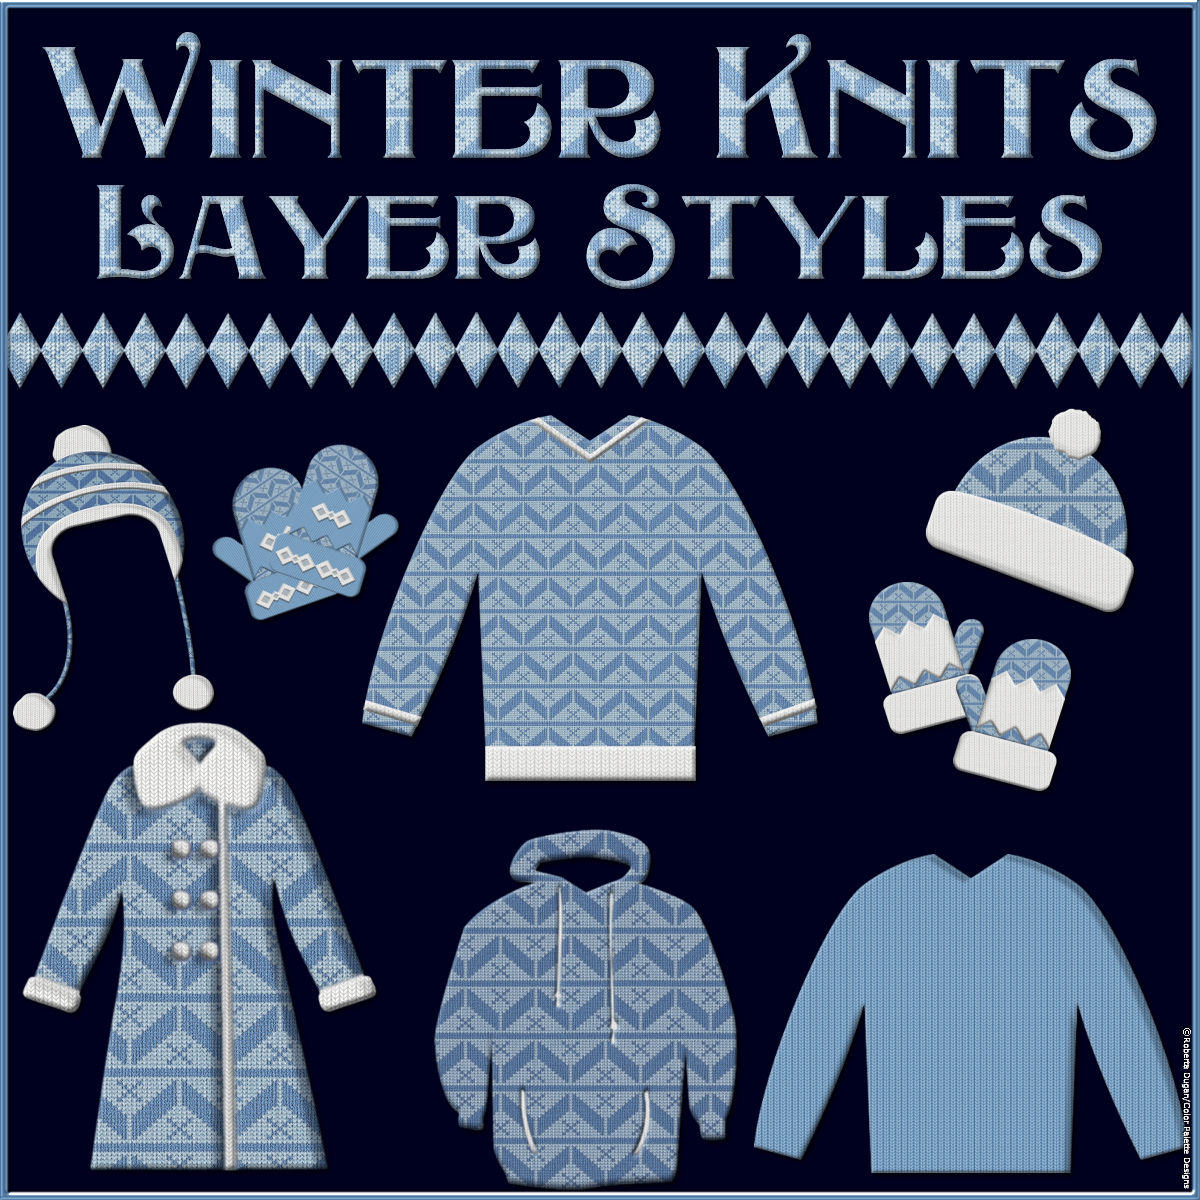 Winter Knits Layer Styles by fractalartist01